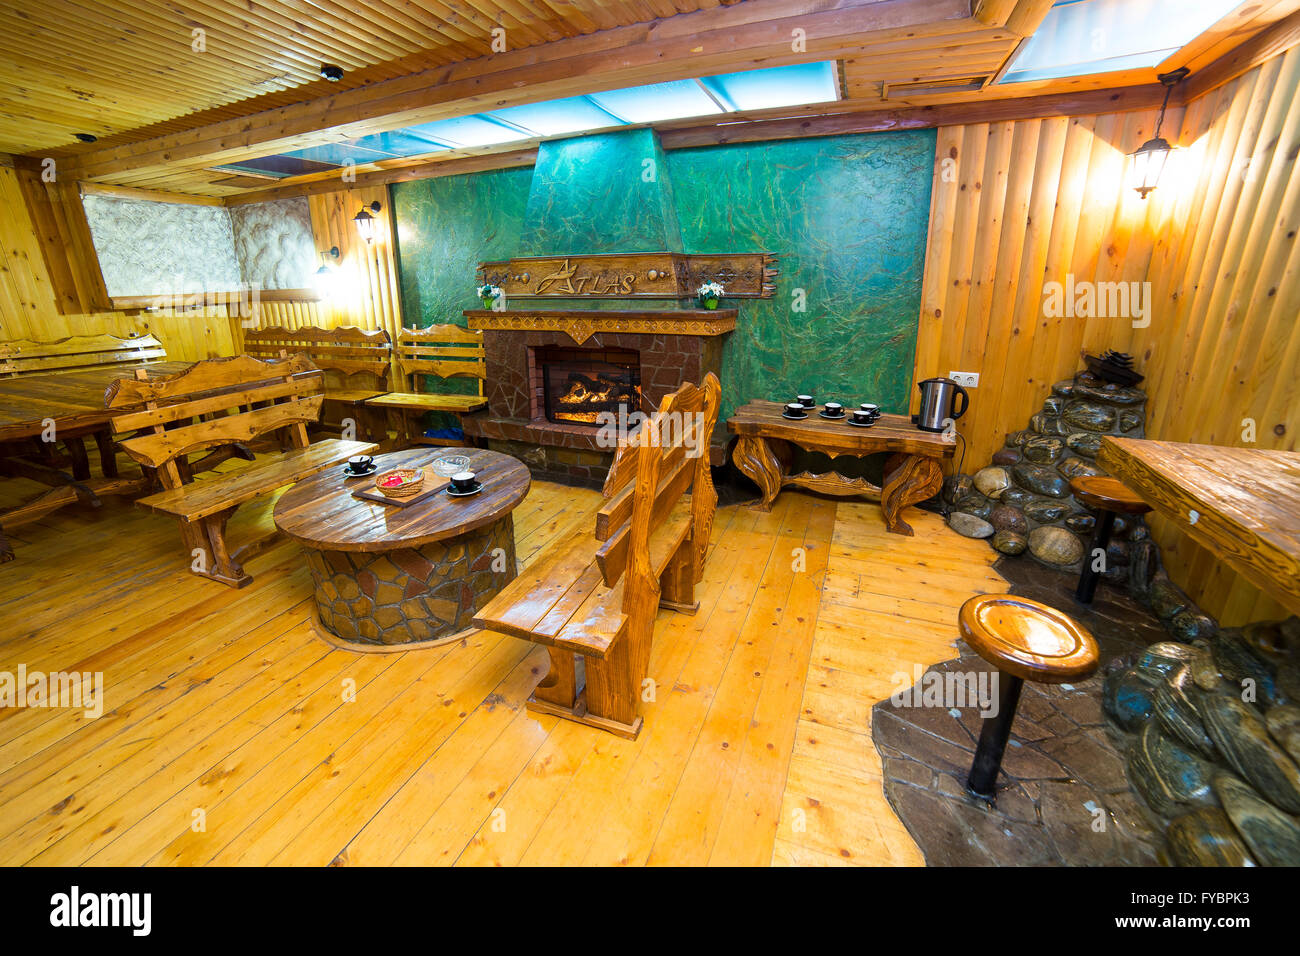 Interior of a restaurant designed in wood with bar - Stock Image